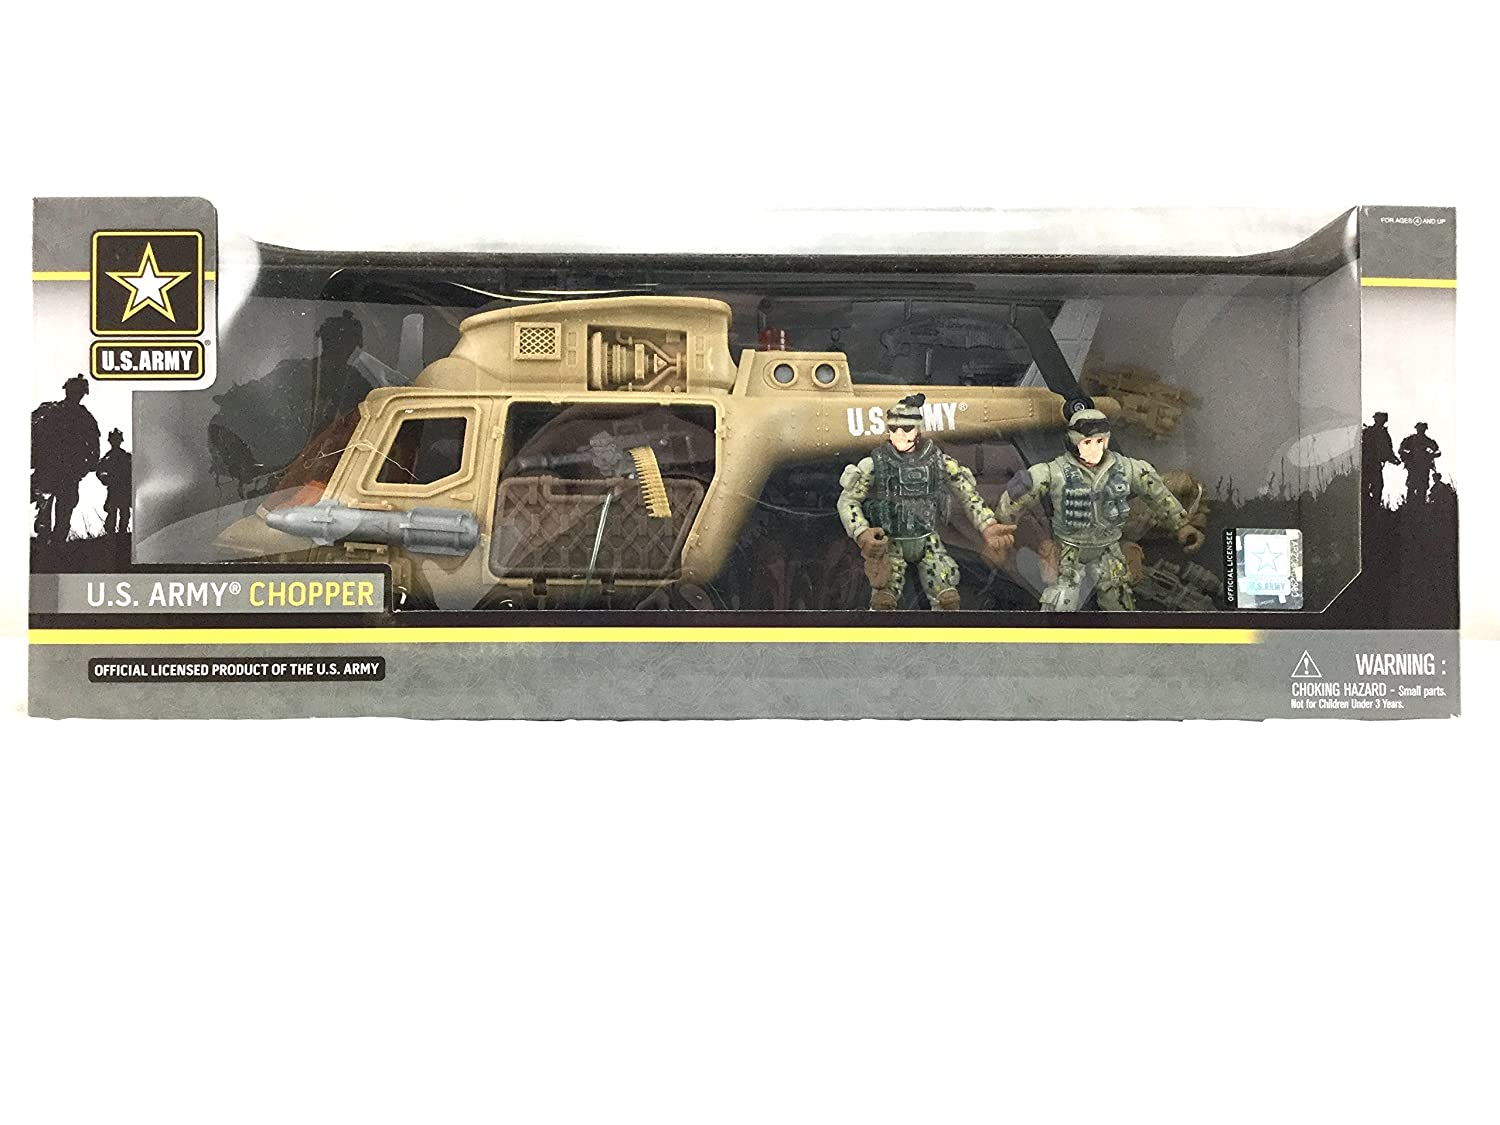 United States Army Chopper Playset with 2 Soldiers